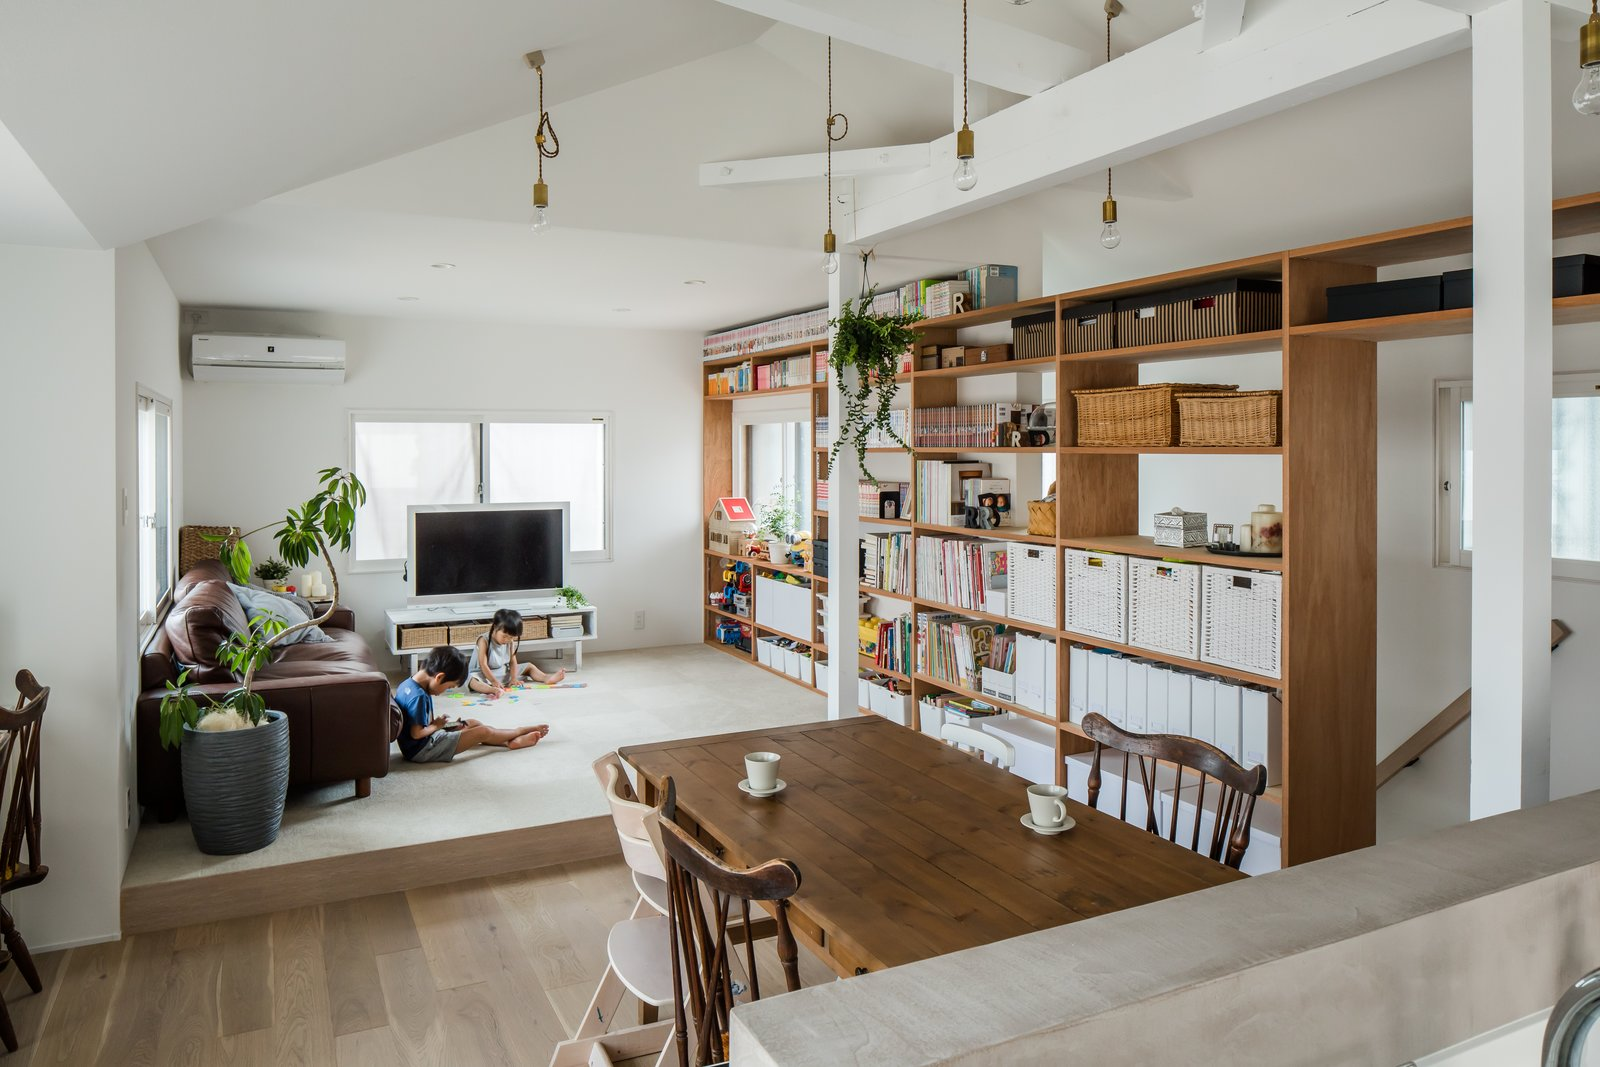 Budget Breakdown A Tired 80s Home In Japan Gets A Bright